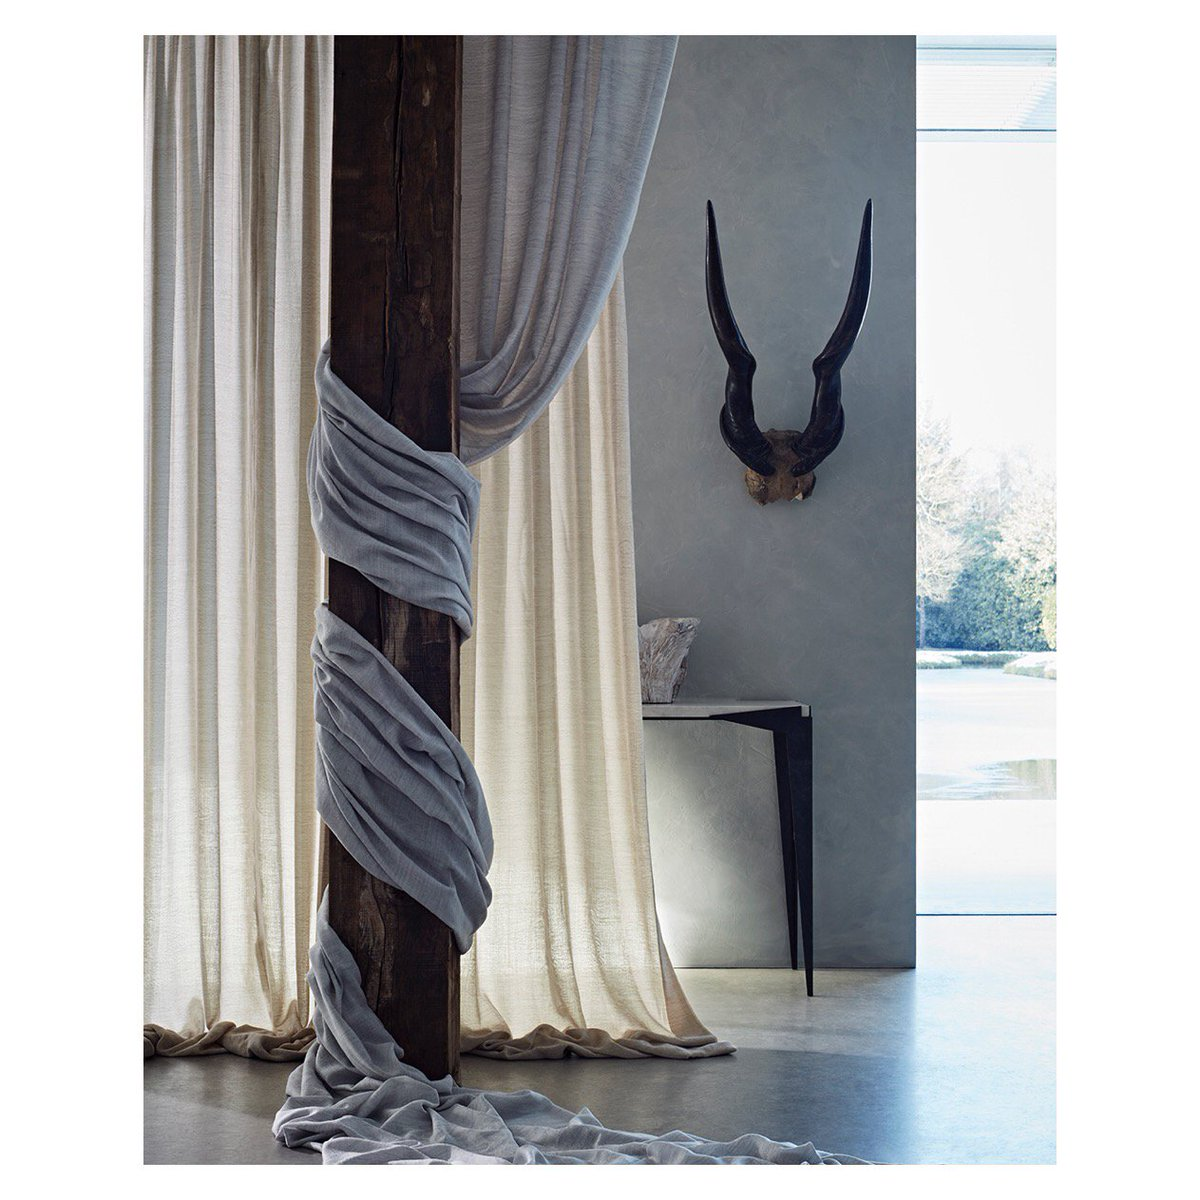 Campaign For Wool On Twitter Beautiful Drapes Curtains From DeLeCuona Loved Its Paisley Founded In 1992 By South African Born Bernie De